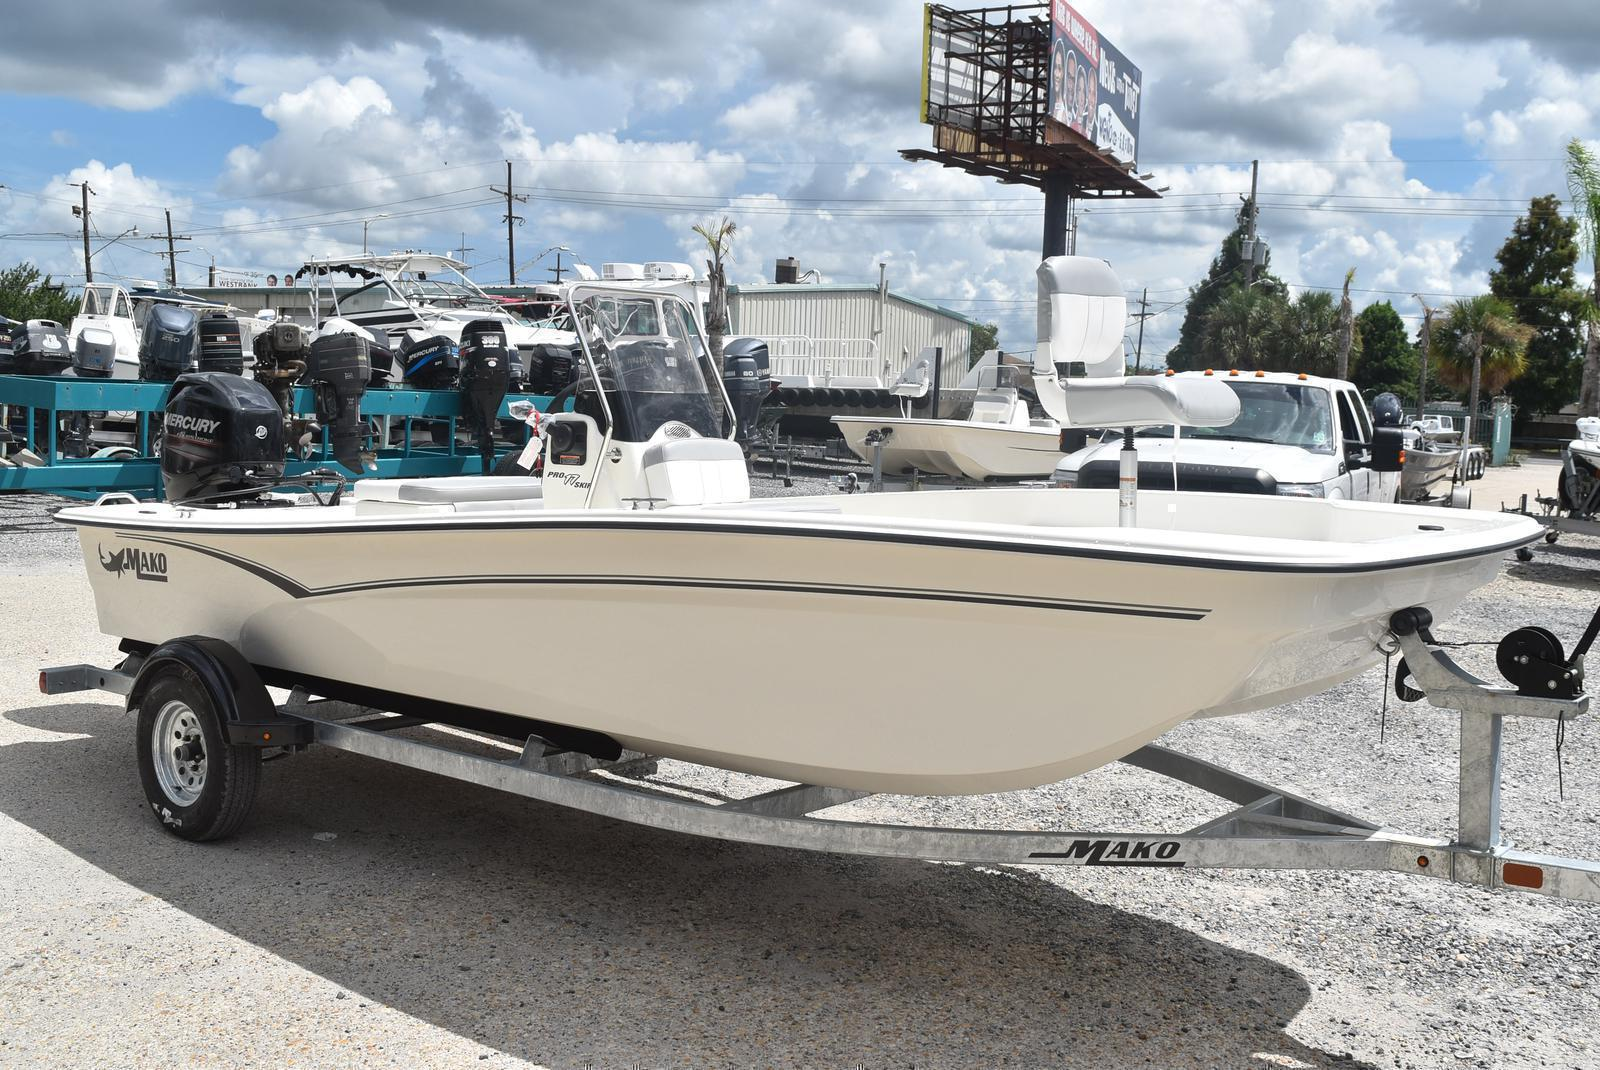 2020 Mako boat for sale, model of the boat is Pro Skiff 17, 75 ELPT & Image # 653 of 702